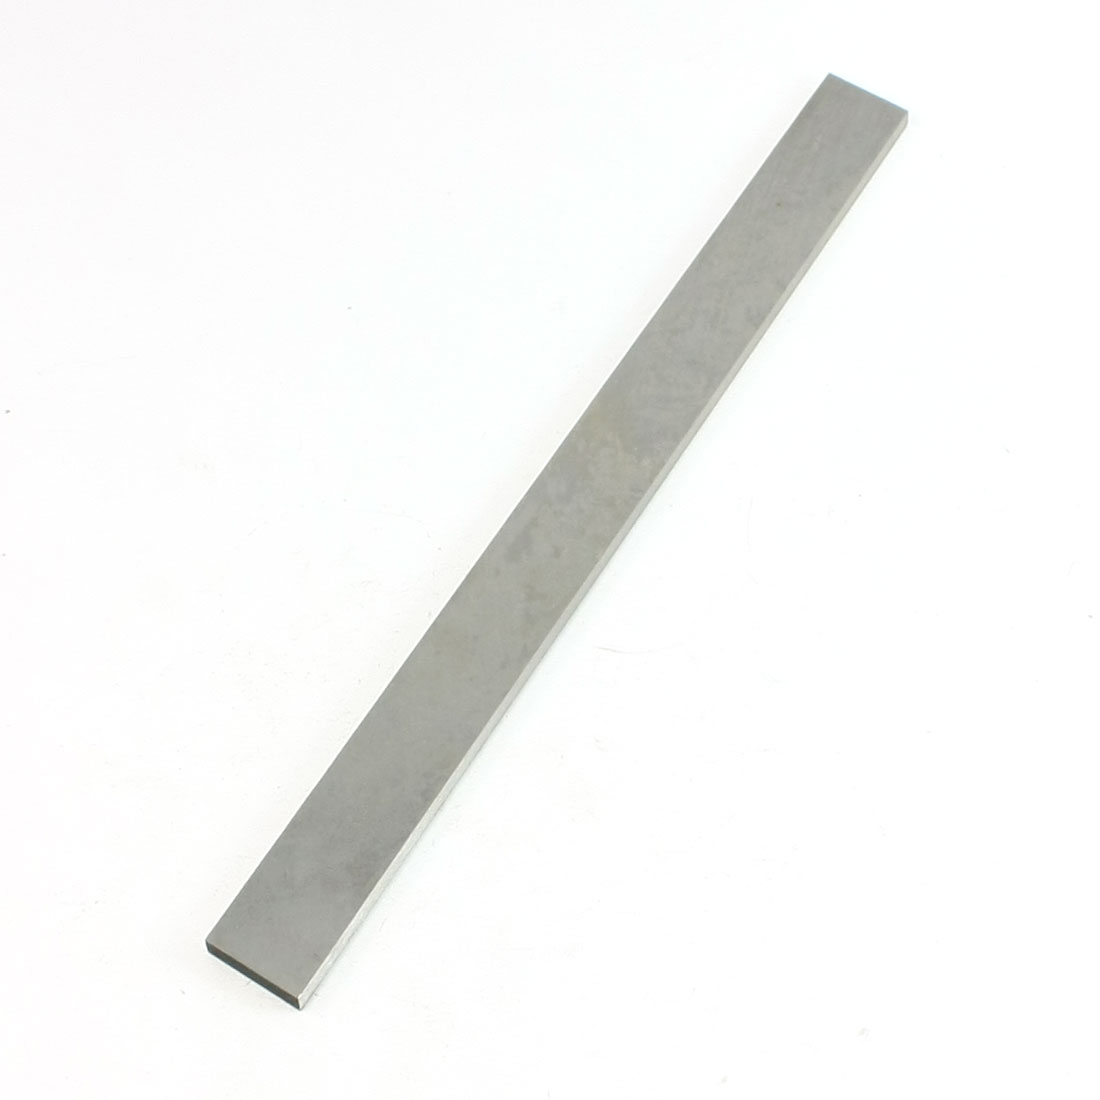 Parallelogram Metalworking Cutting Lathe HSS Tool Bit 3mmx16mmx200mm